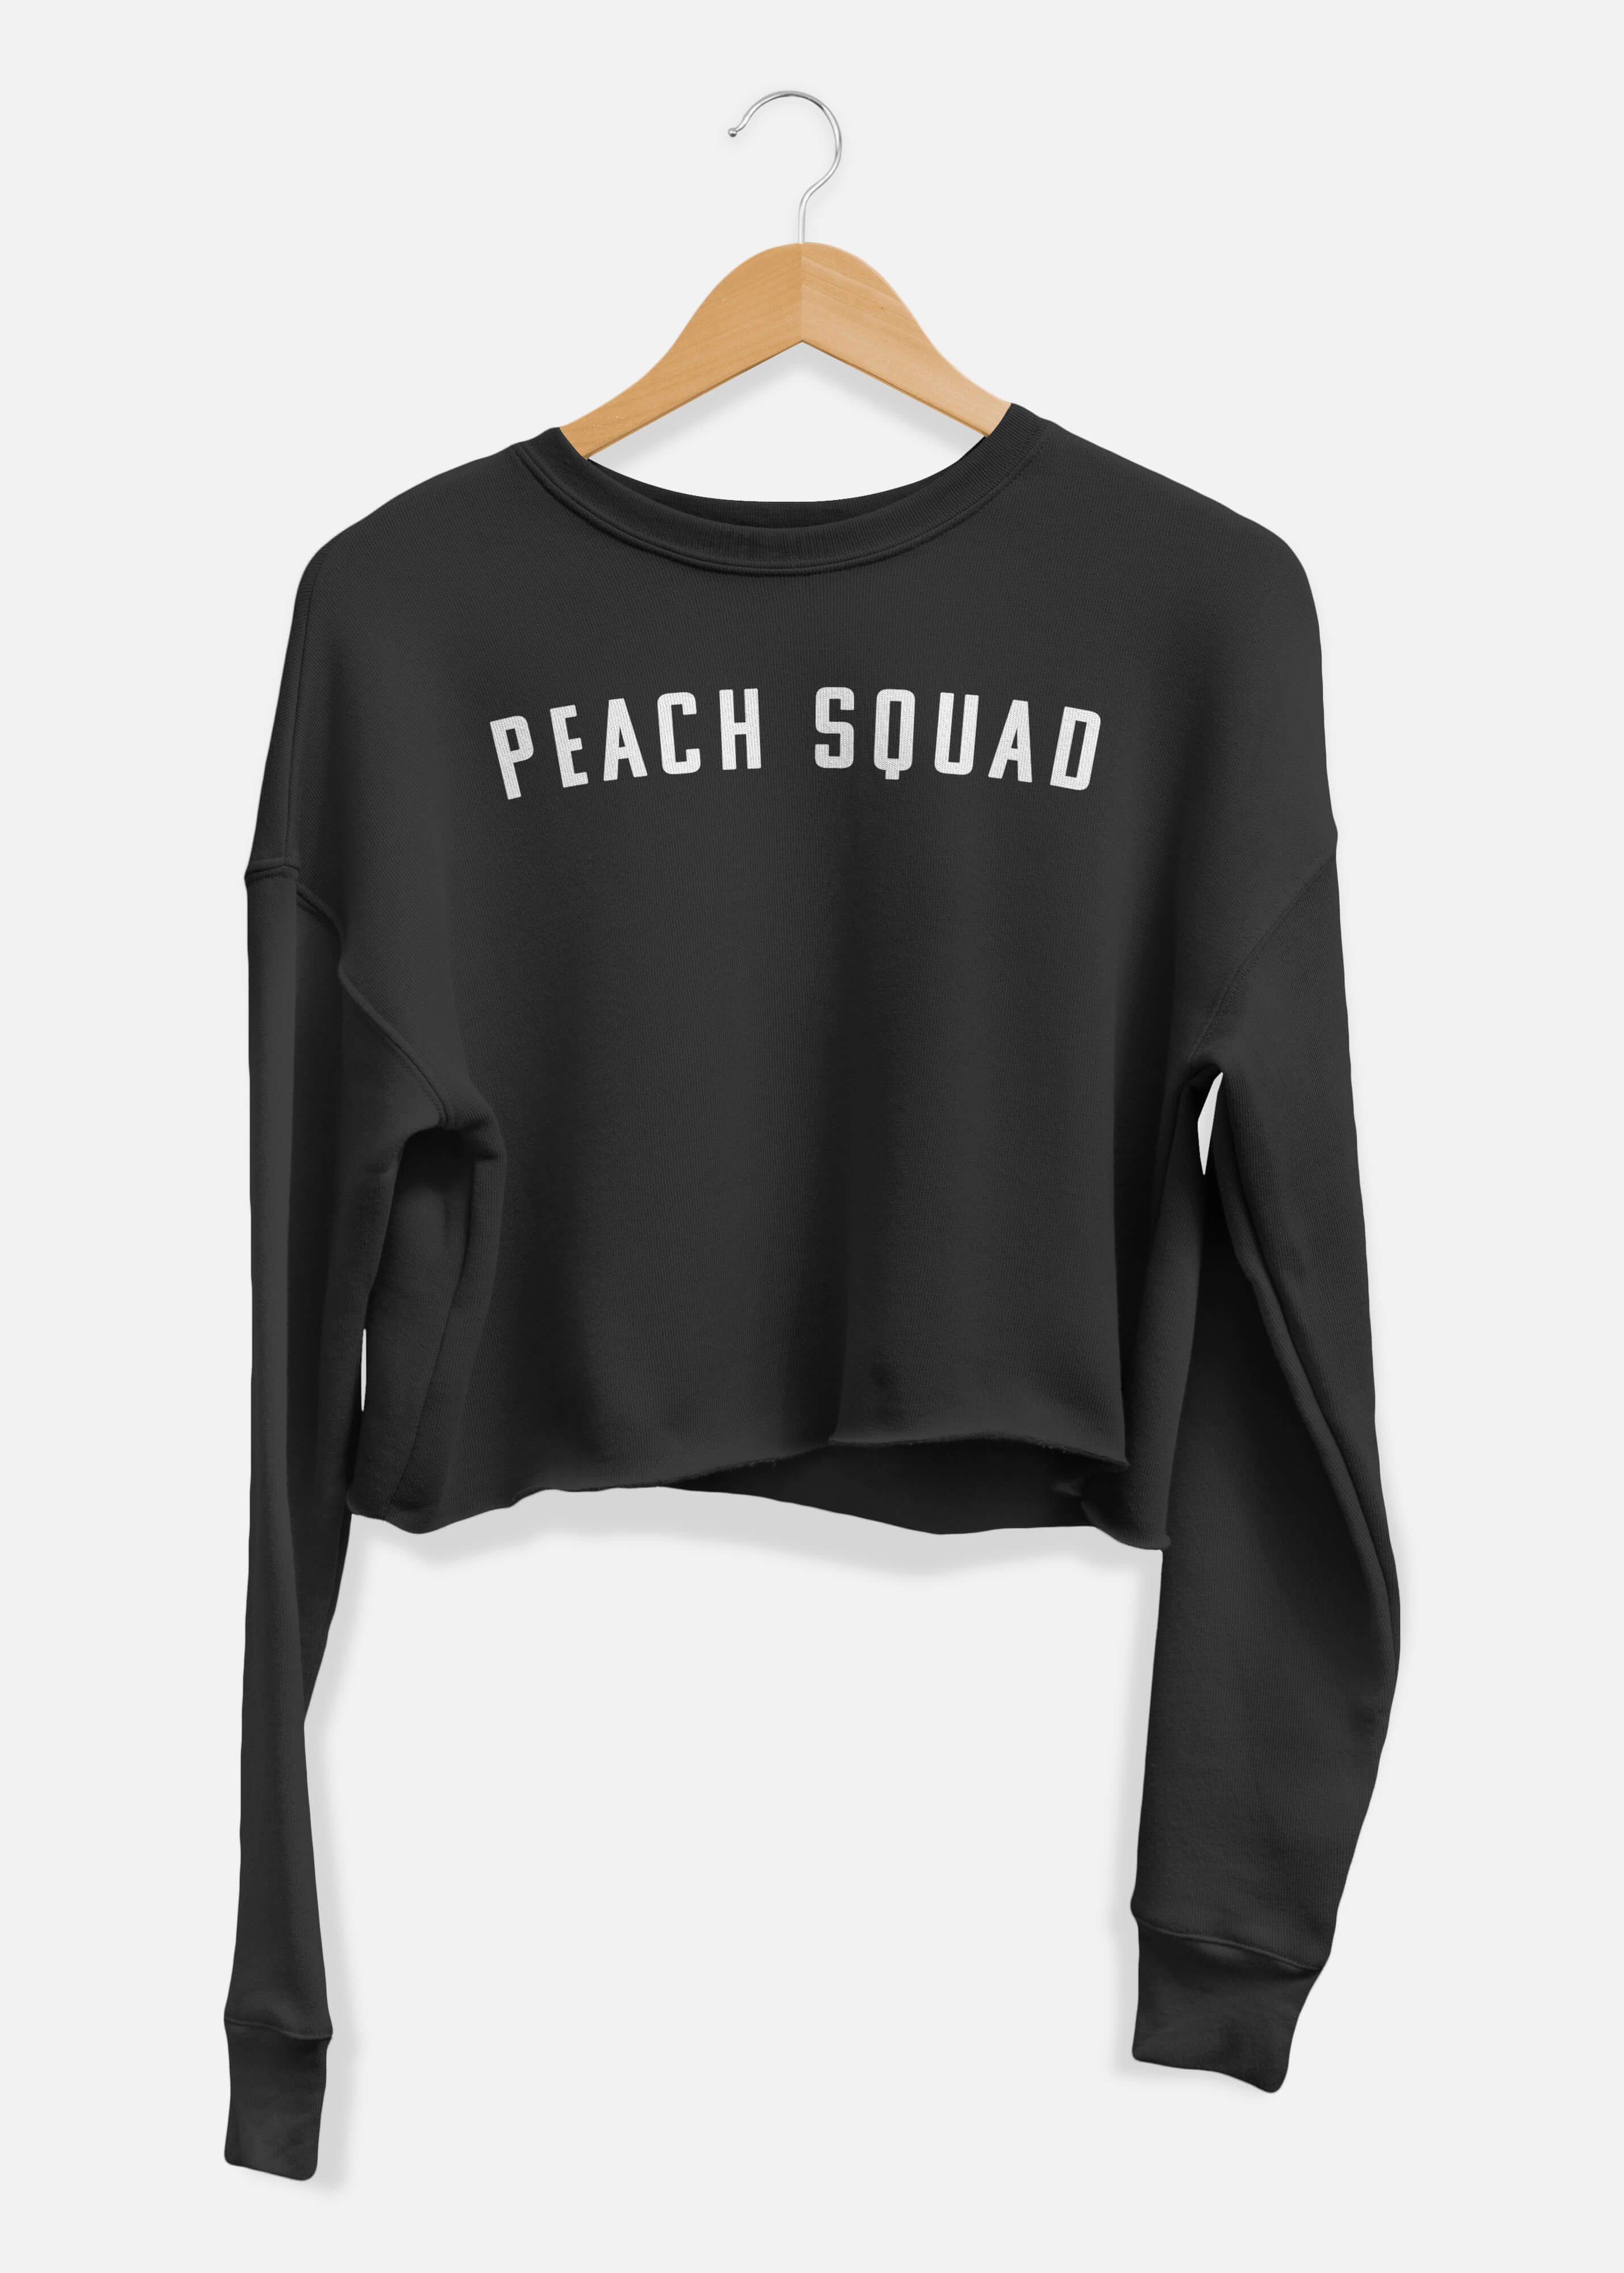 Peach Squad Cropped Sweater